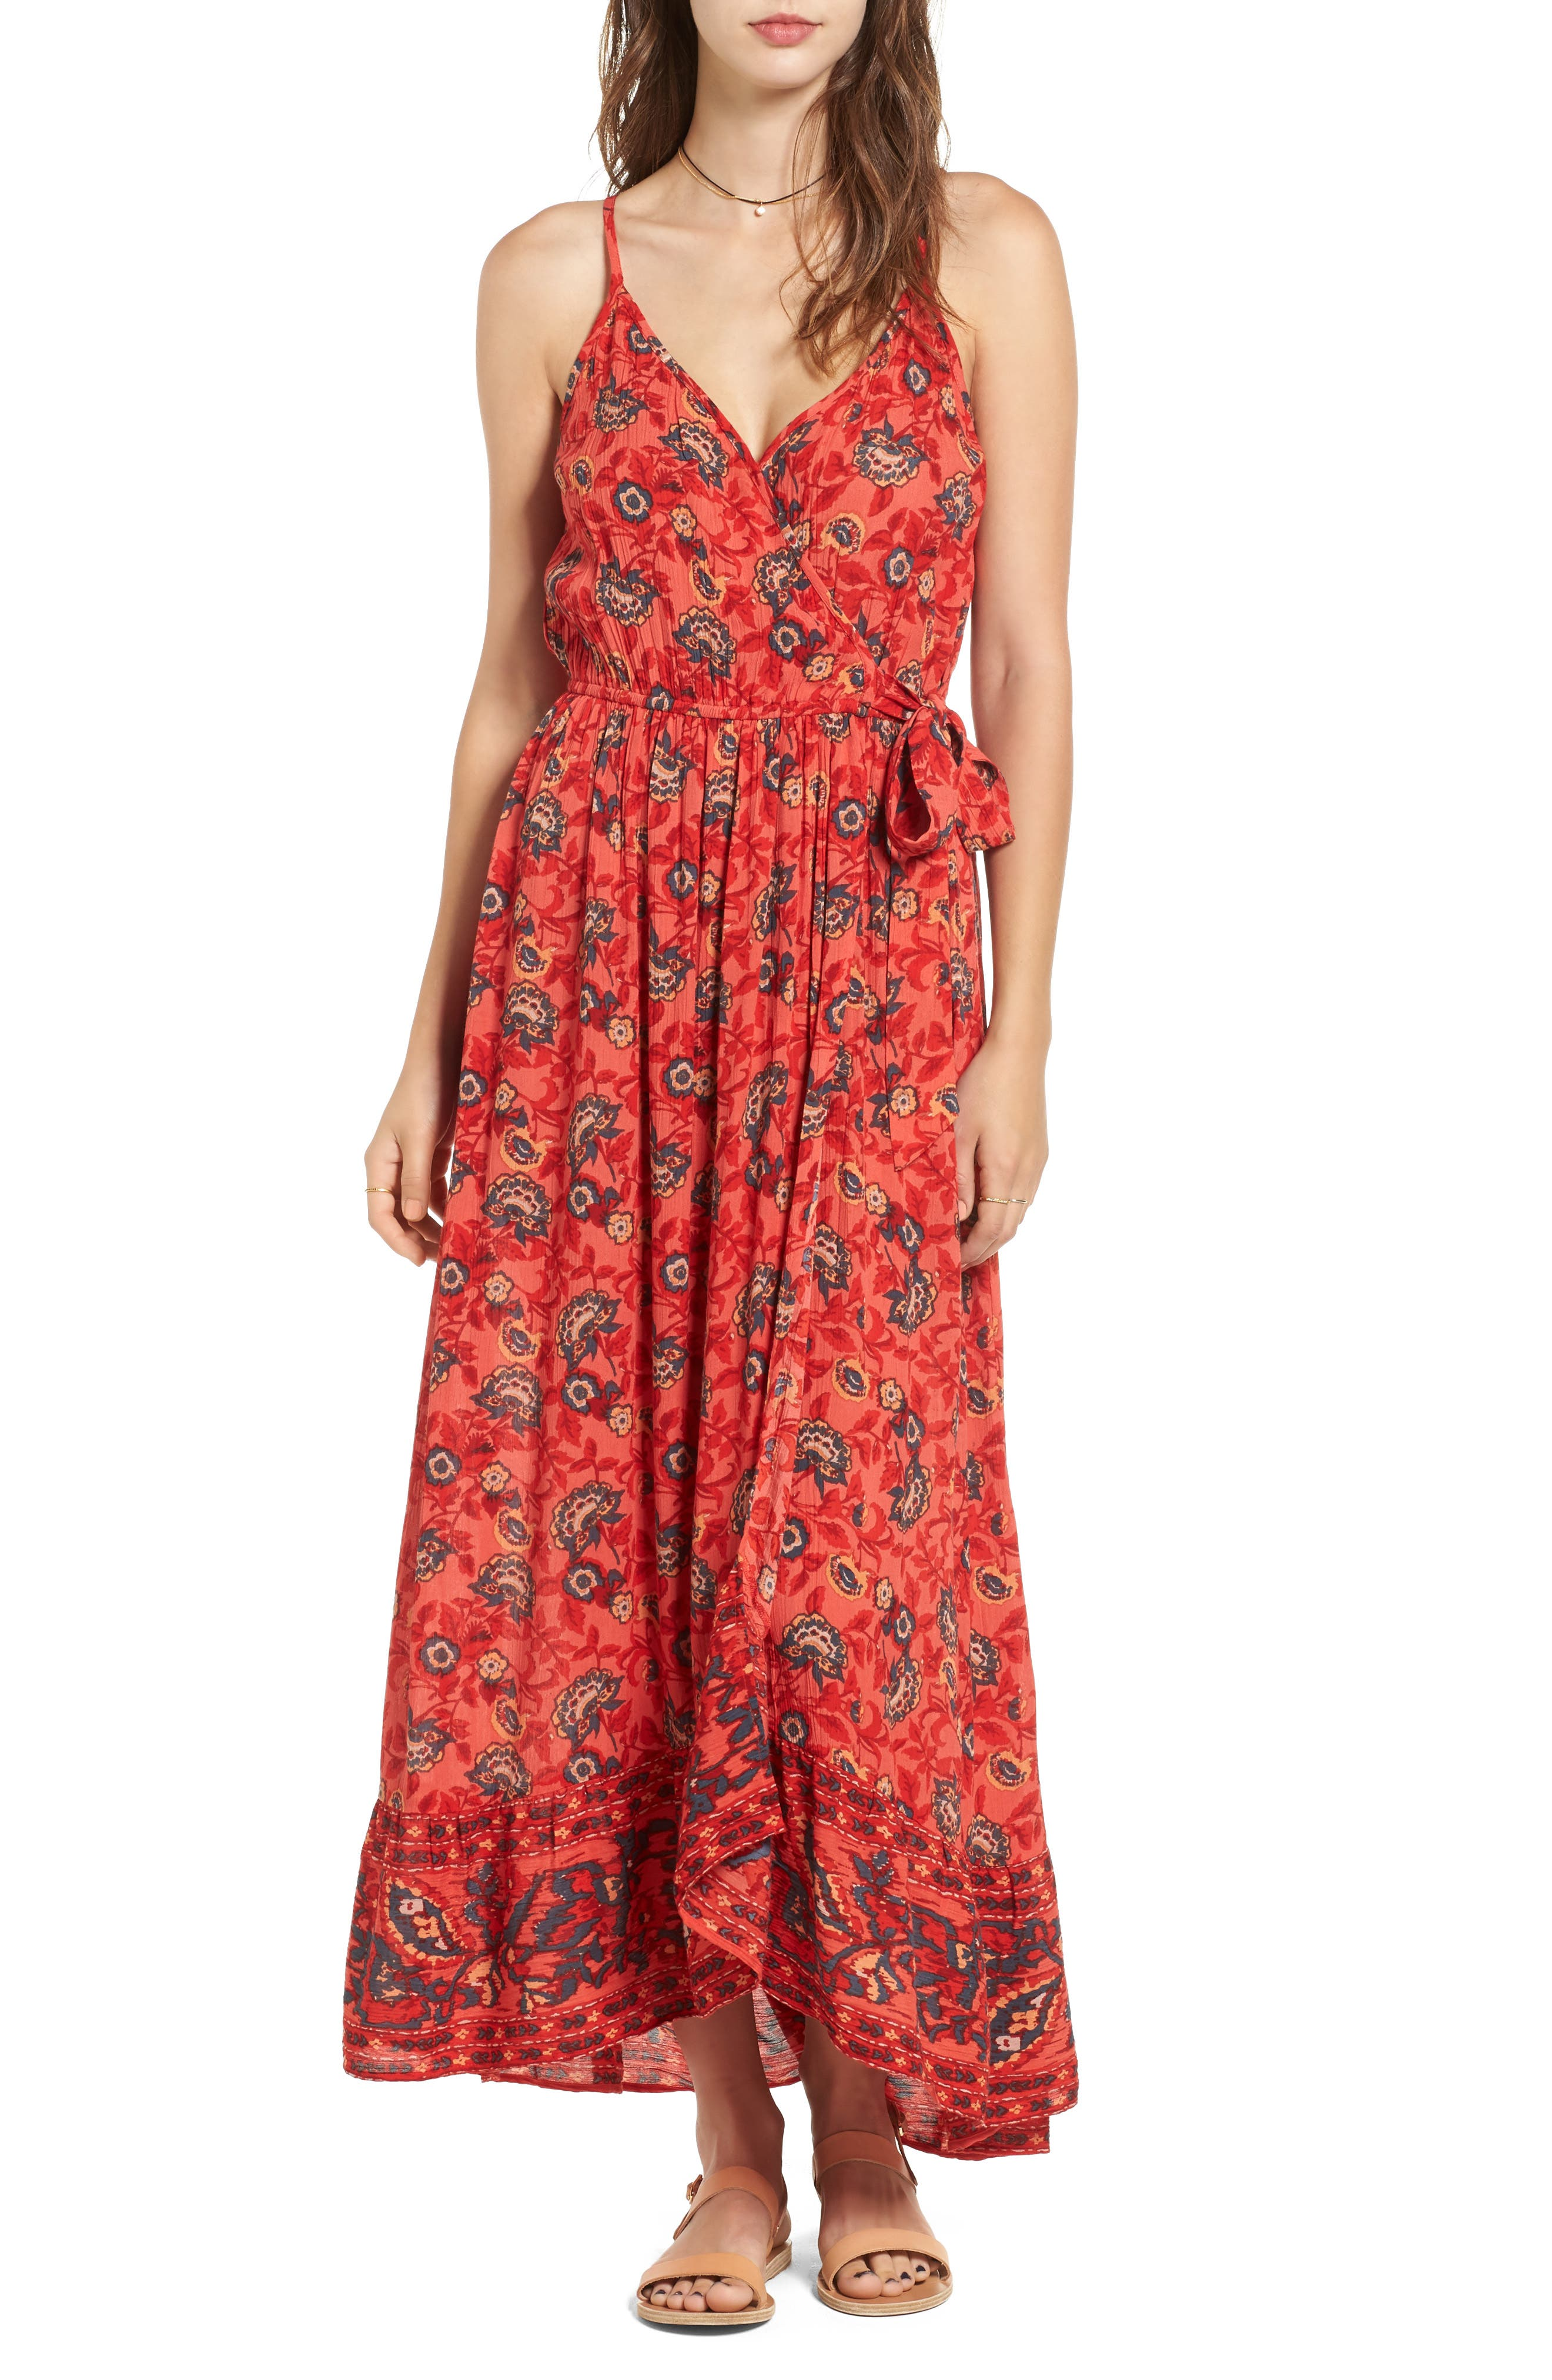 Band of Gypsies Bohemian Wrap Dress